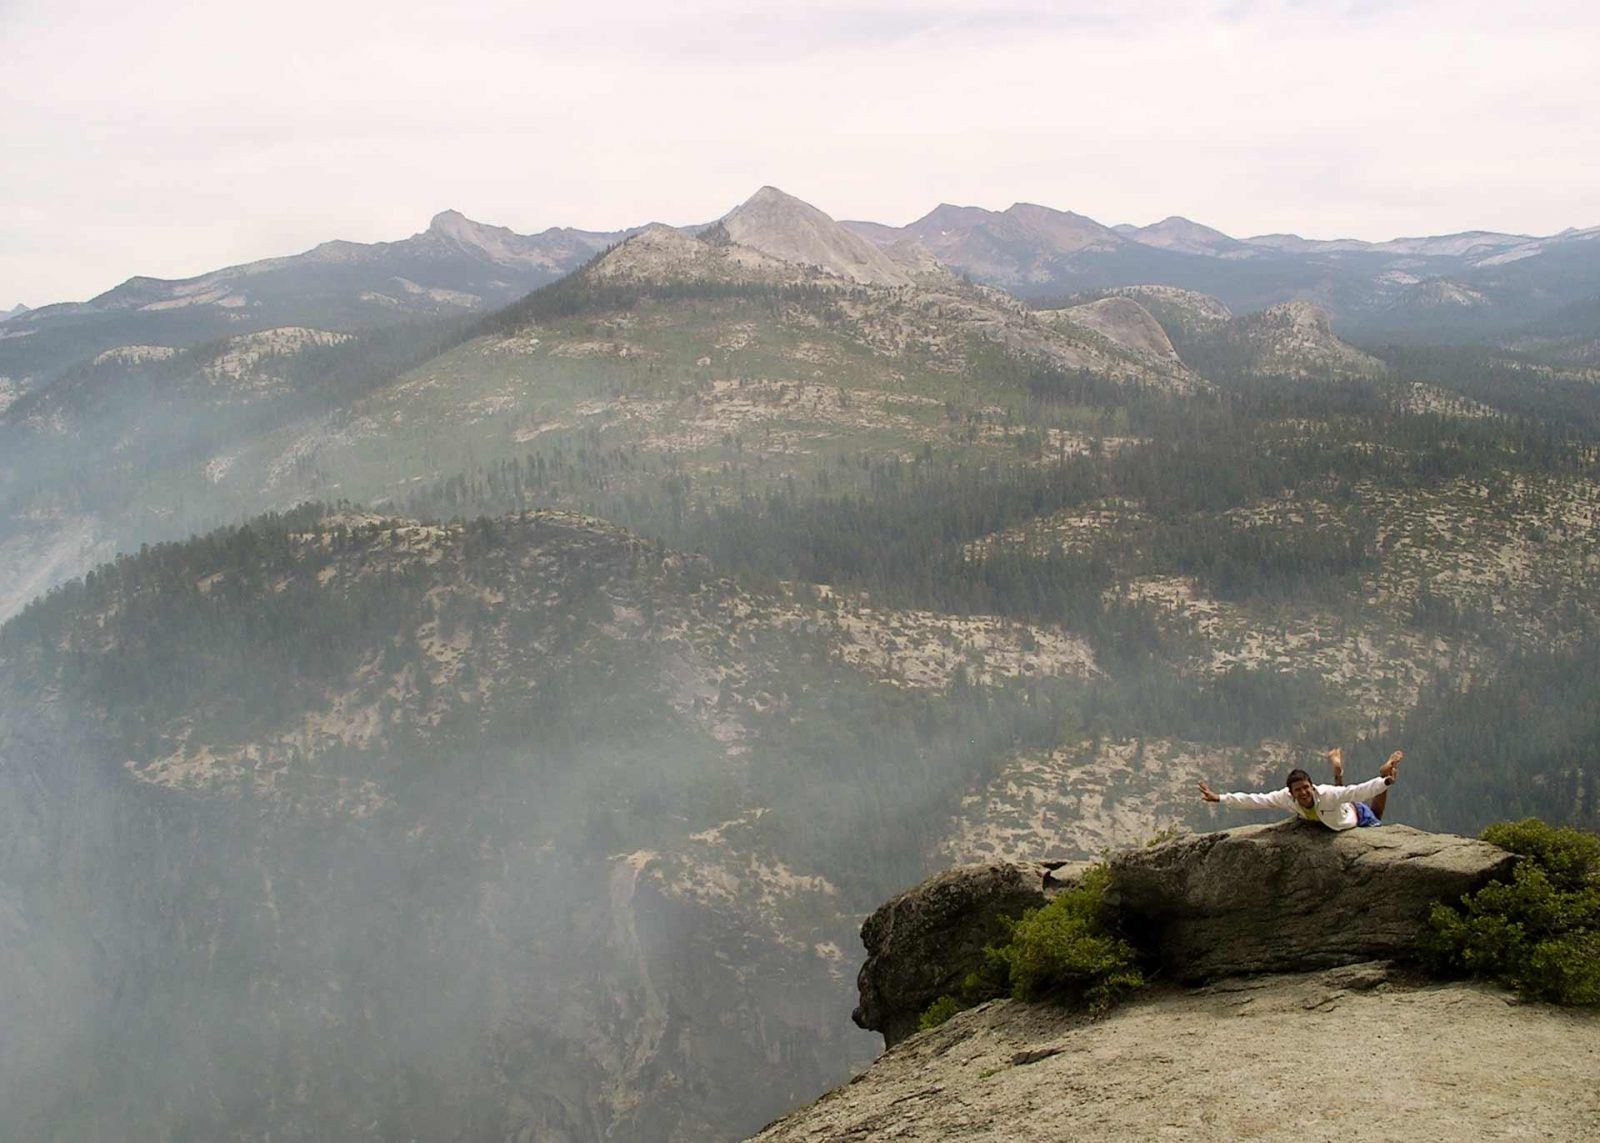 A Family Trip to Yosemite with Forest Fires and Photography on Falcondale Life Blog. Smoke from Big Meadow Fire 2009